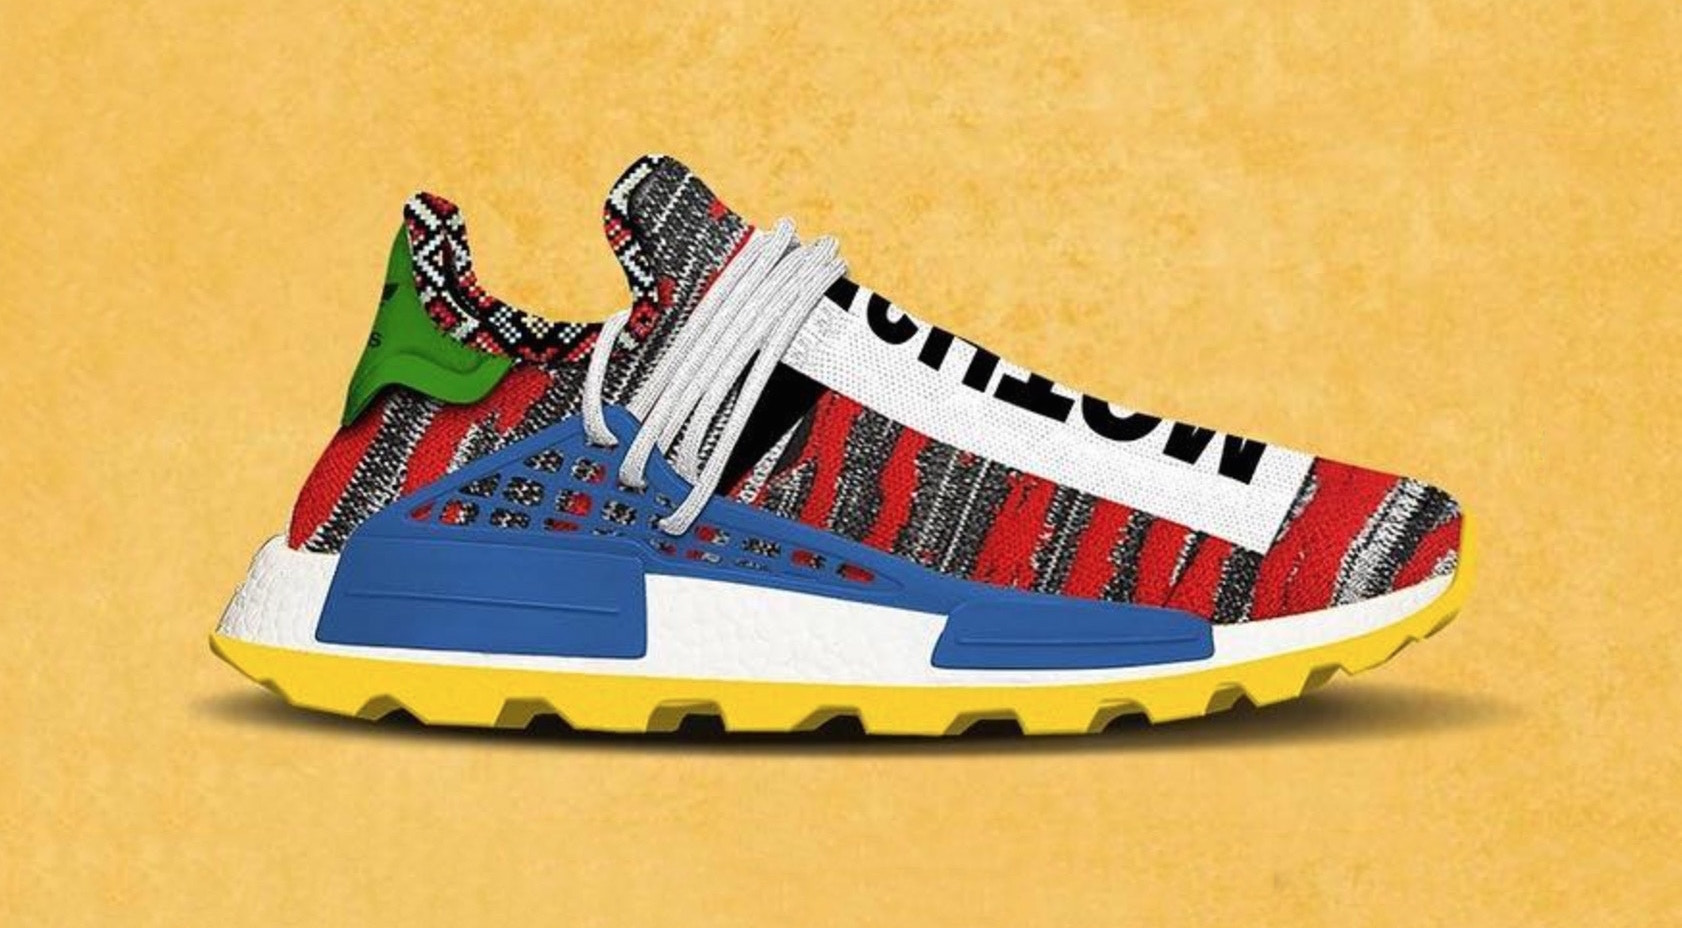 new style 77c9b 03d90 Pharrell x adidas Afro NMD Hu Pack Releasing Fall 2018 ...